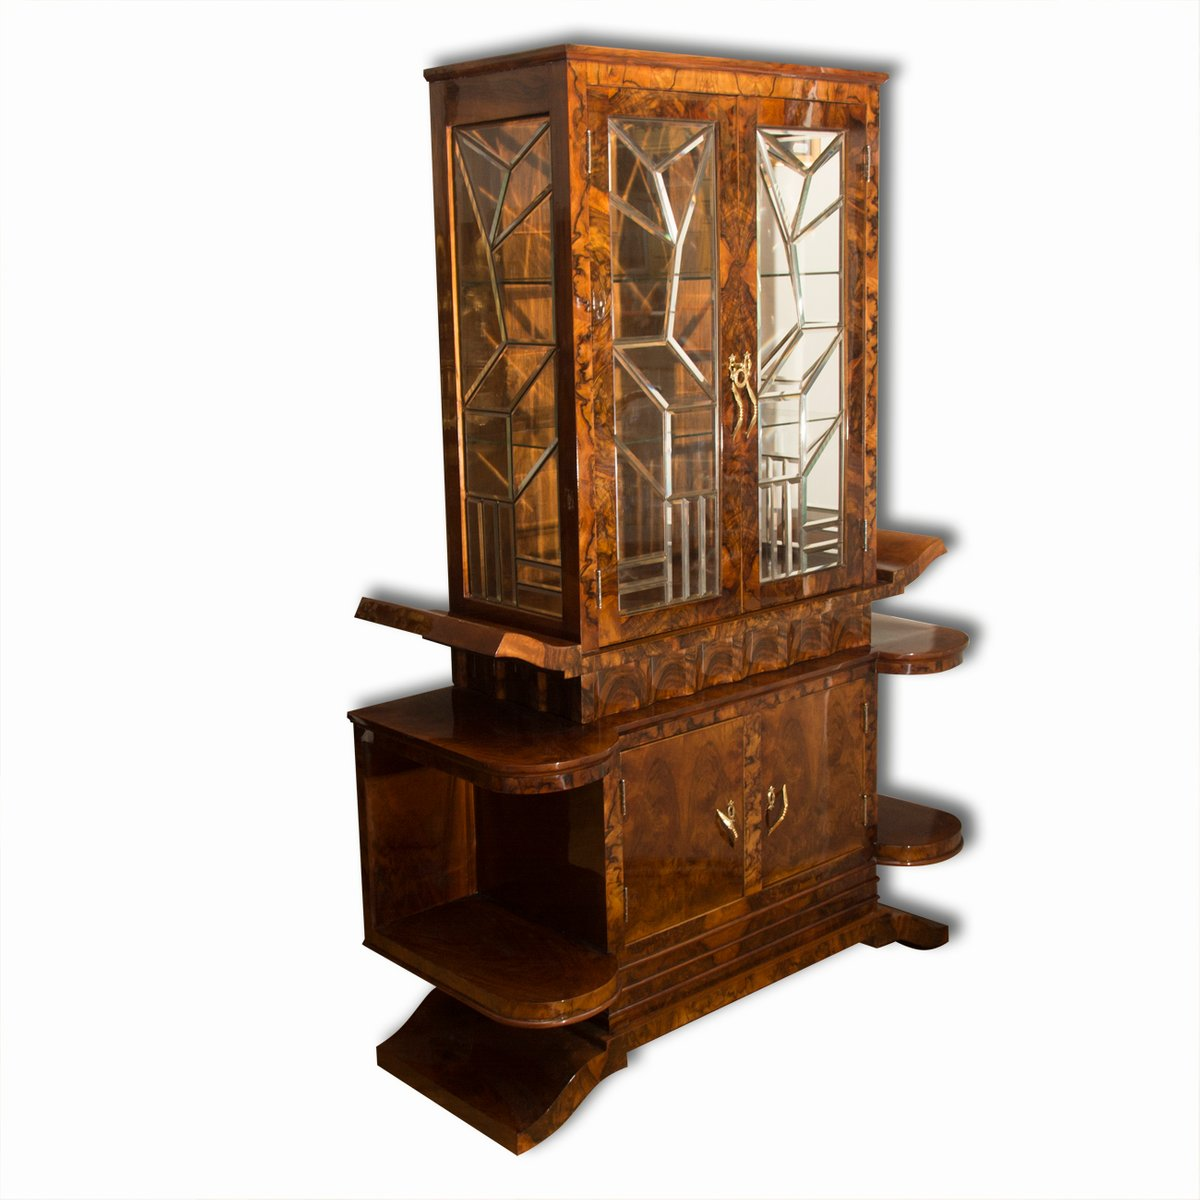 Italian art deco display cabinet 1930s for sale at pamono for Miroir art deco 1930